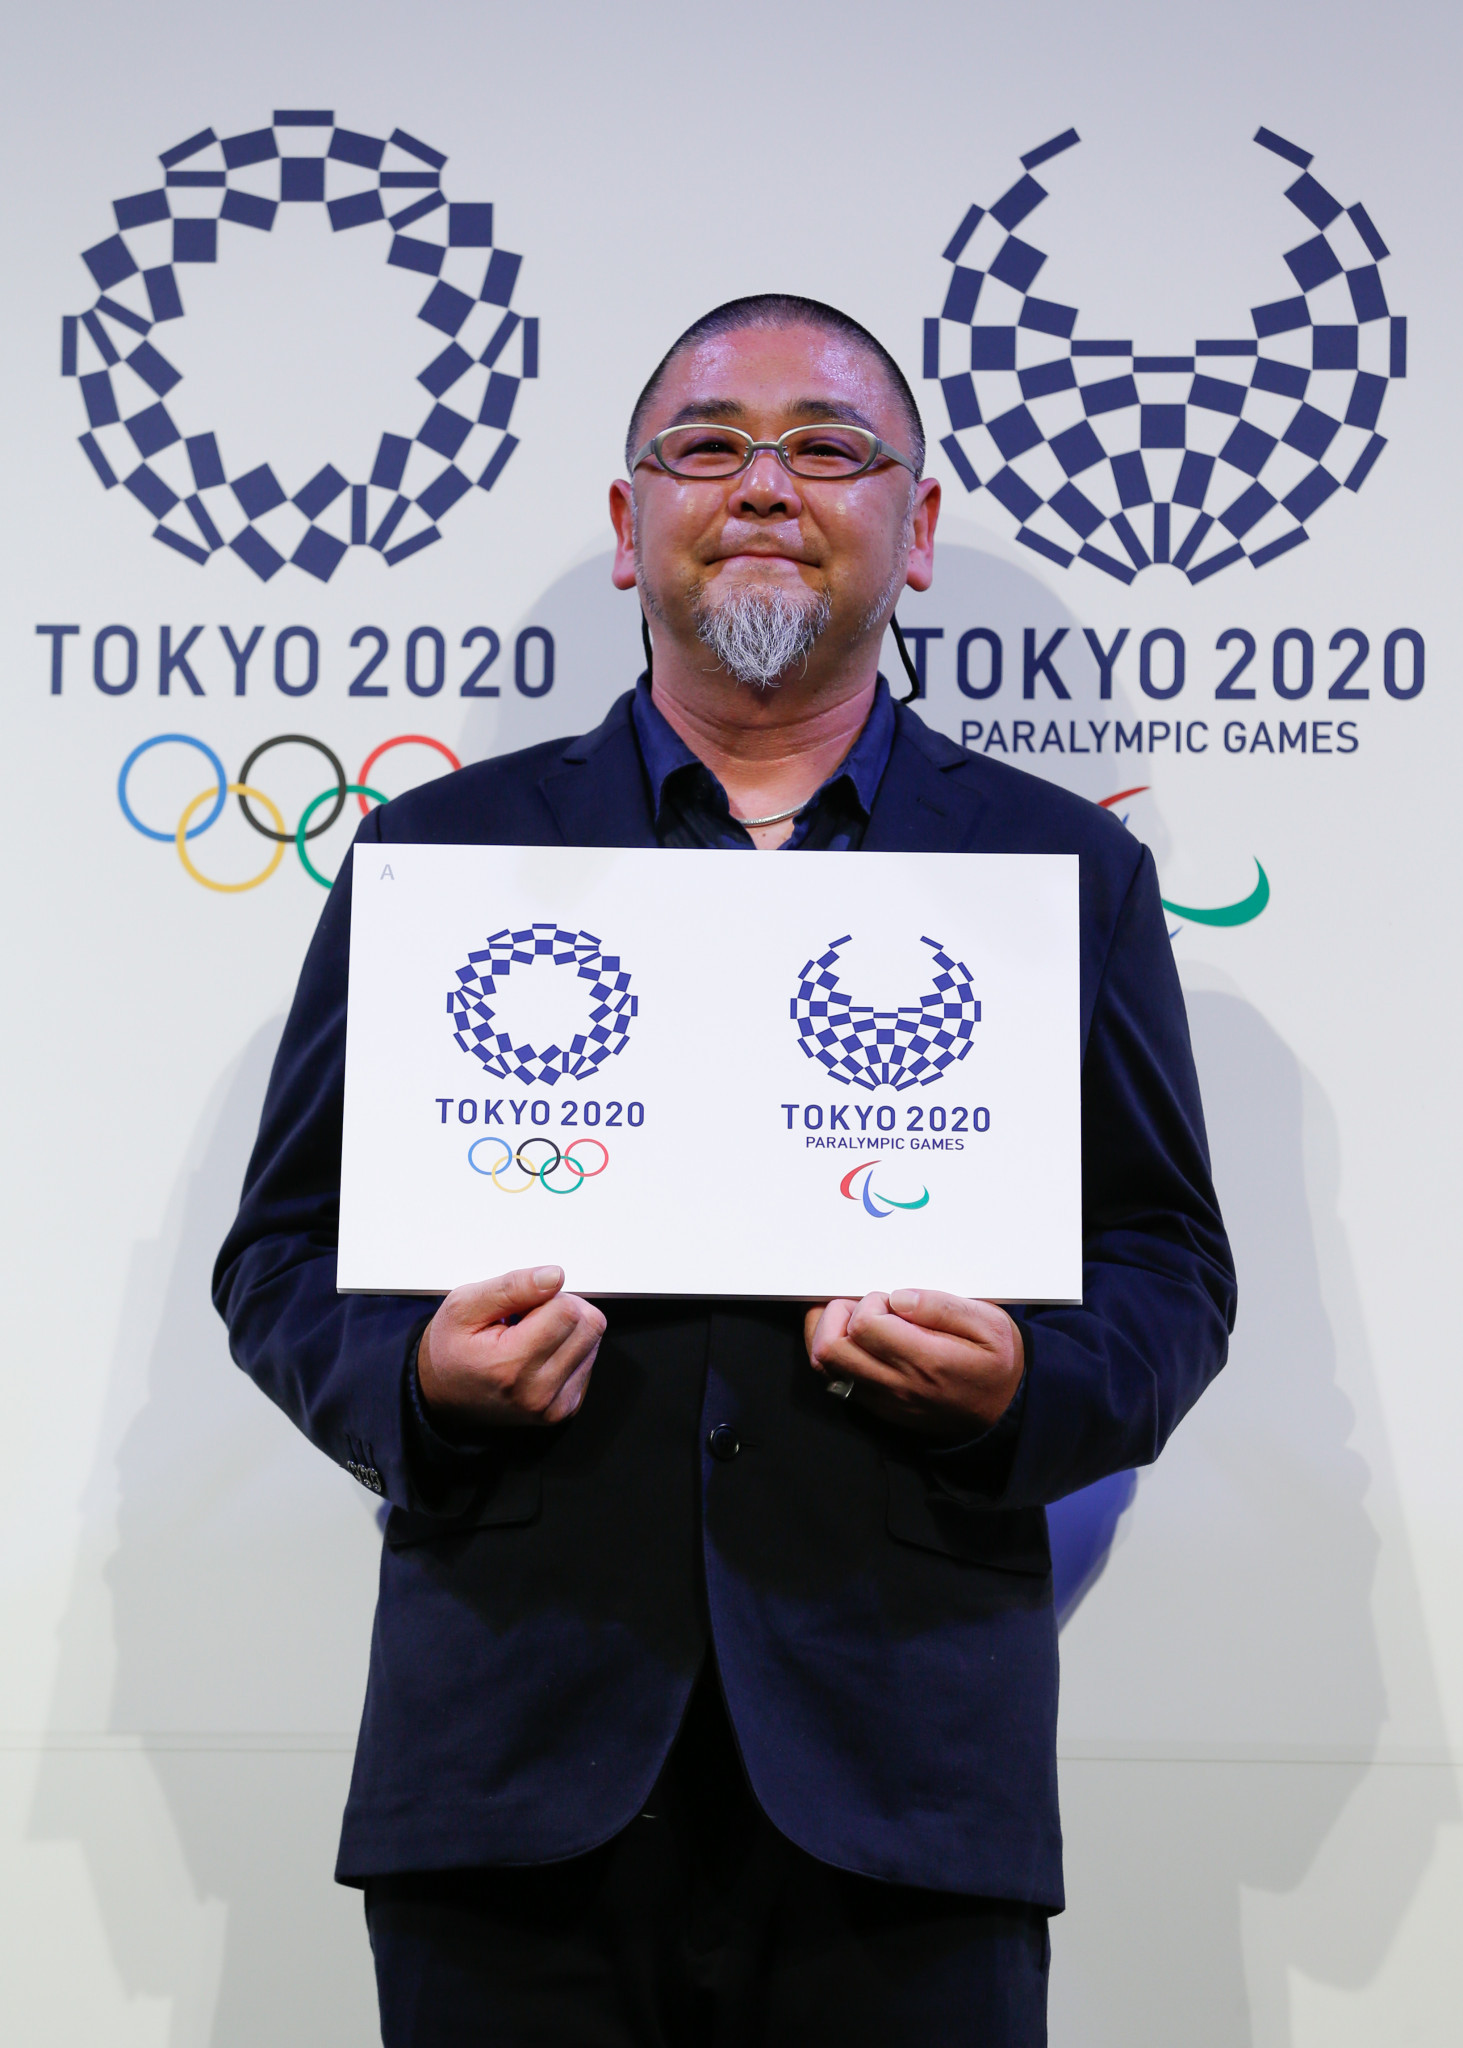 Asao Tokolo, the Japanese artist who designed the Tokyo 2020 emblems, will provide two pieces of work ©Getty Images